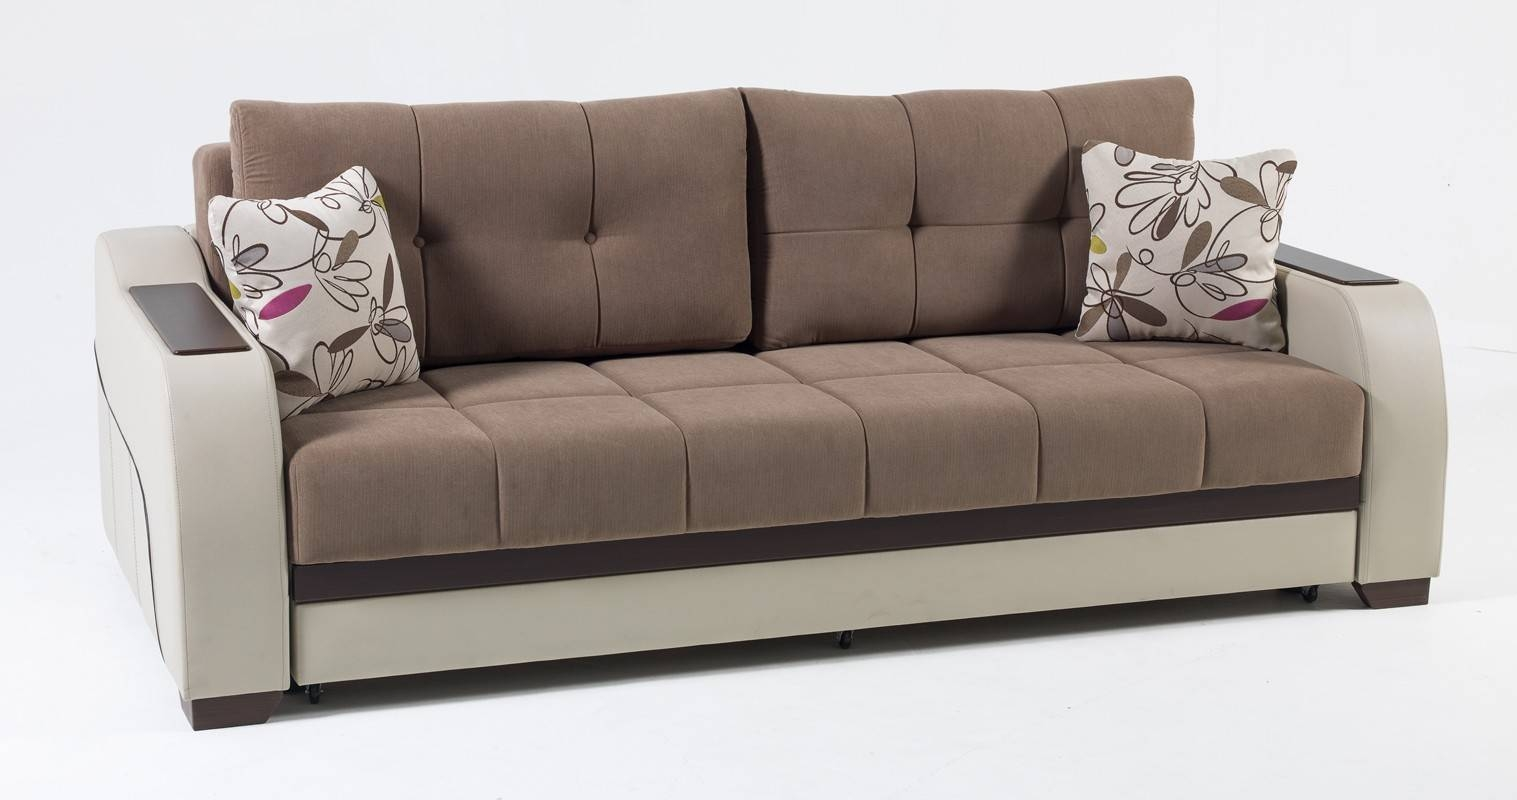 Modern Chair Bed intended for Contemporary Sofas and Chairs (Image 12 of 15)